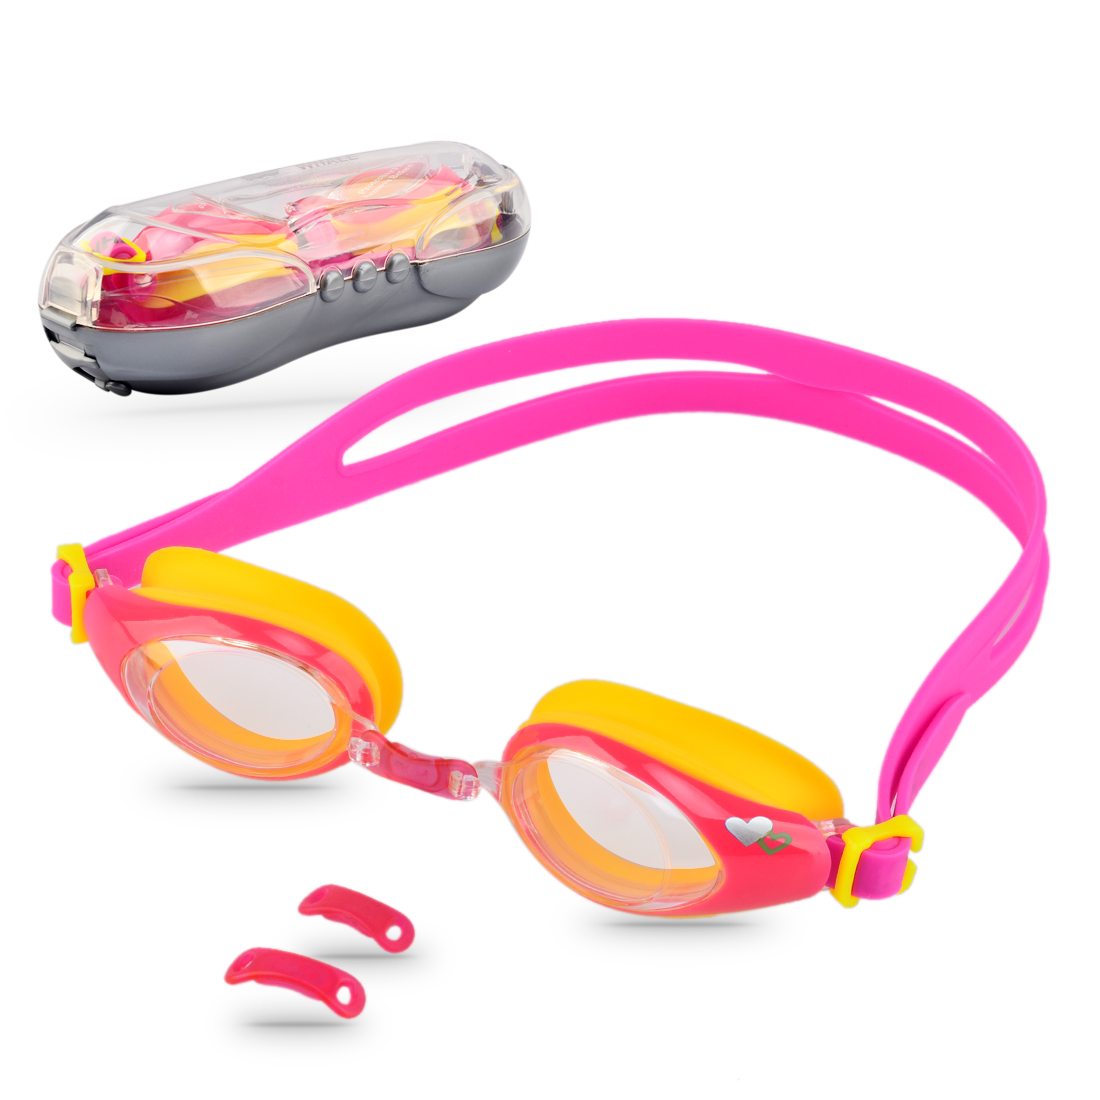 Kids Swimming Goggles UV Protection Anti-fog Lens Soft Silicone Frame Color 1 by